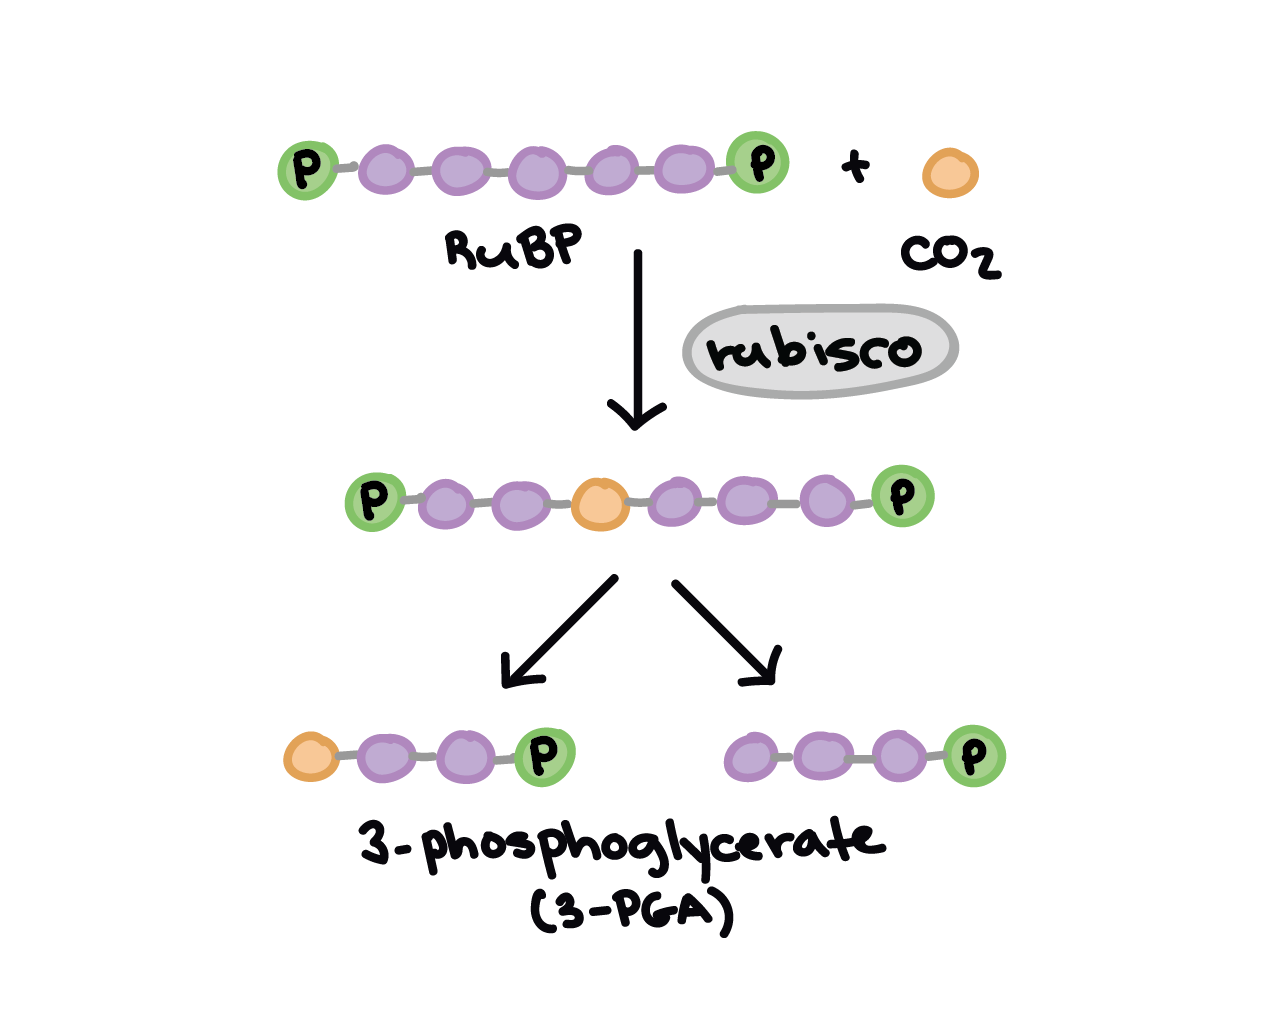 calvin benson cycle diagram microstructures w fe fe3c phase 3atp are produced in c3 chloroplast give